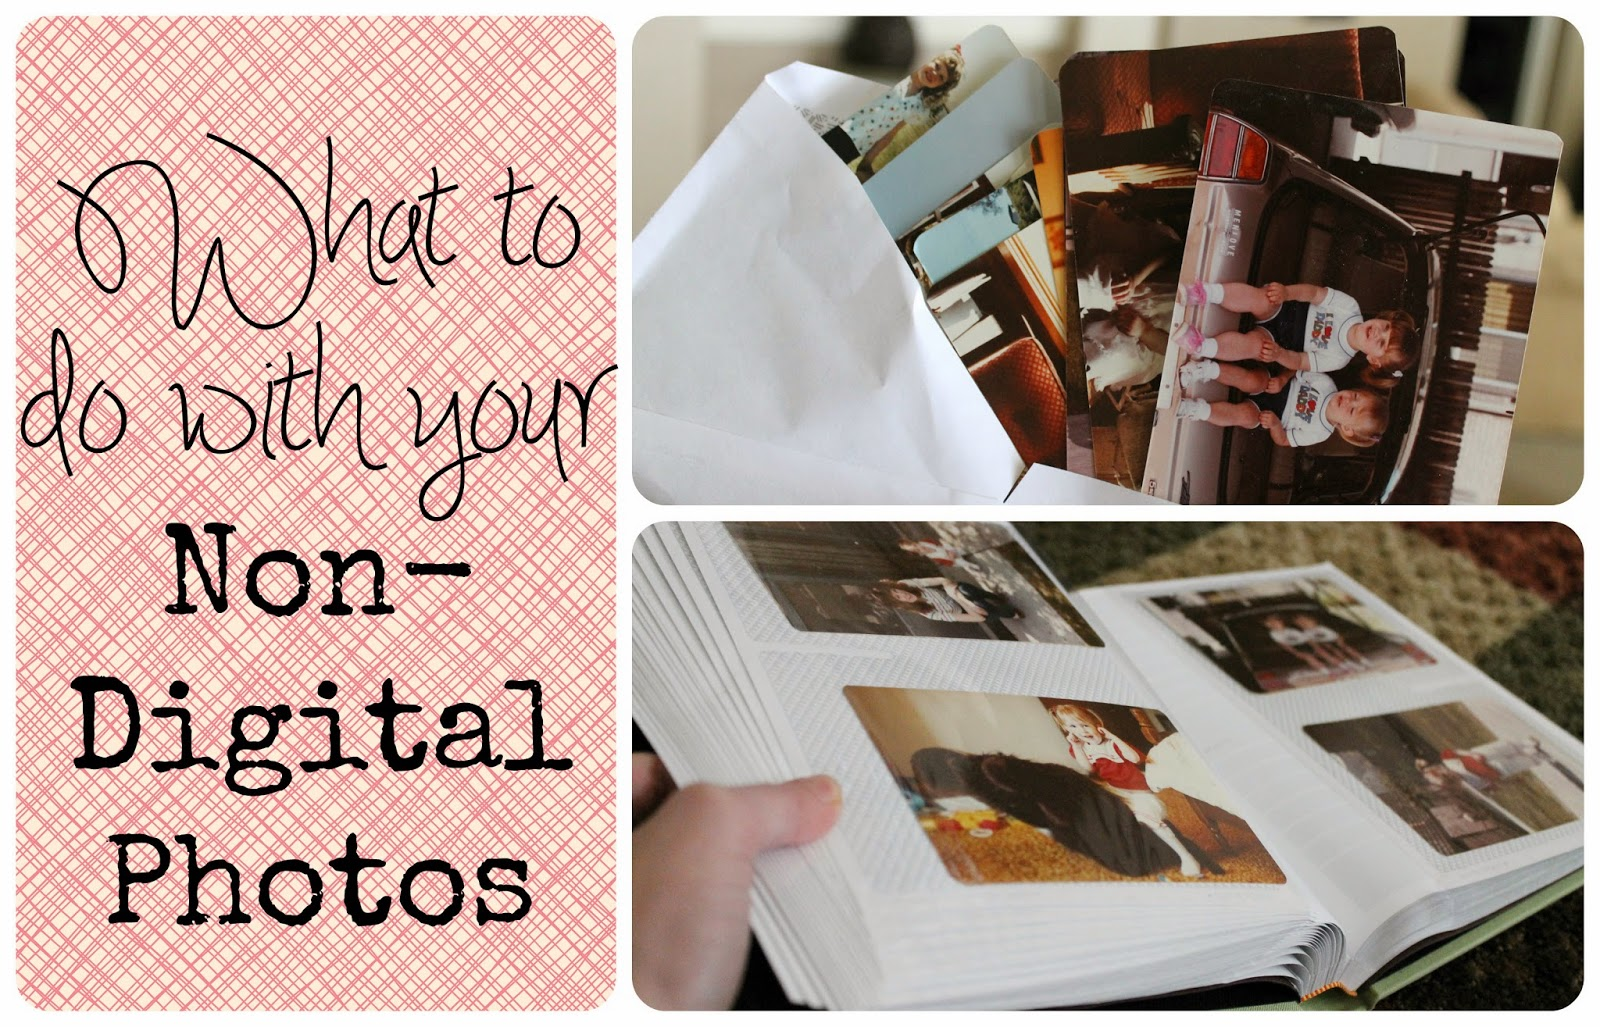 what to do with non digital photos, organizing photos, organizing non digital photos